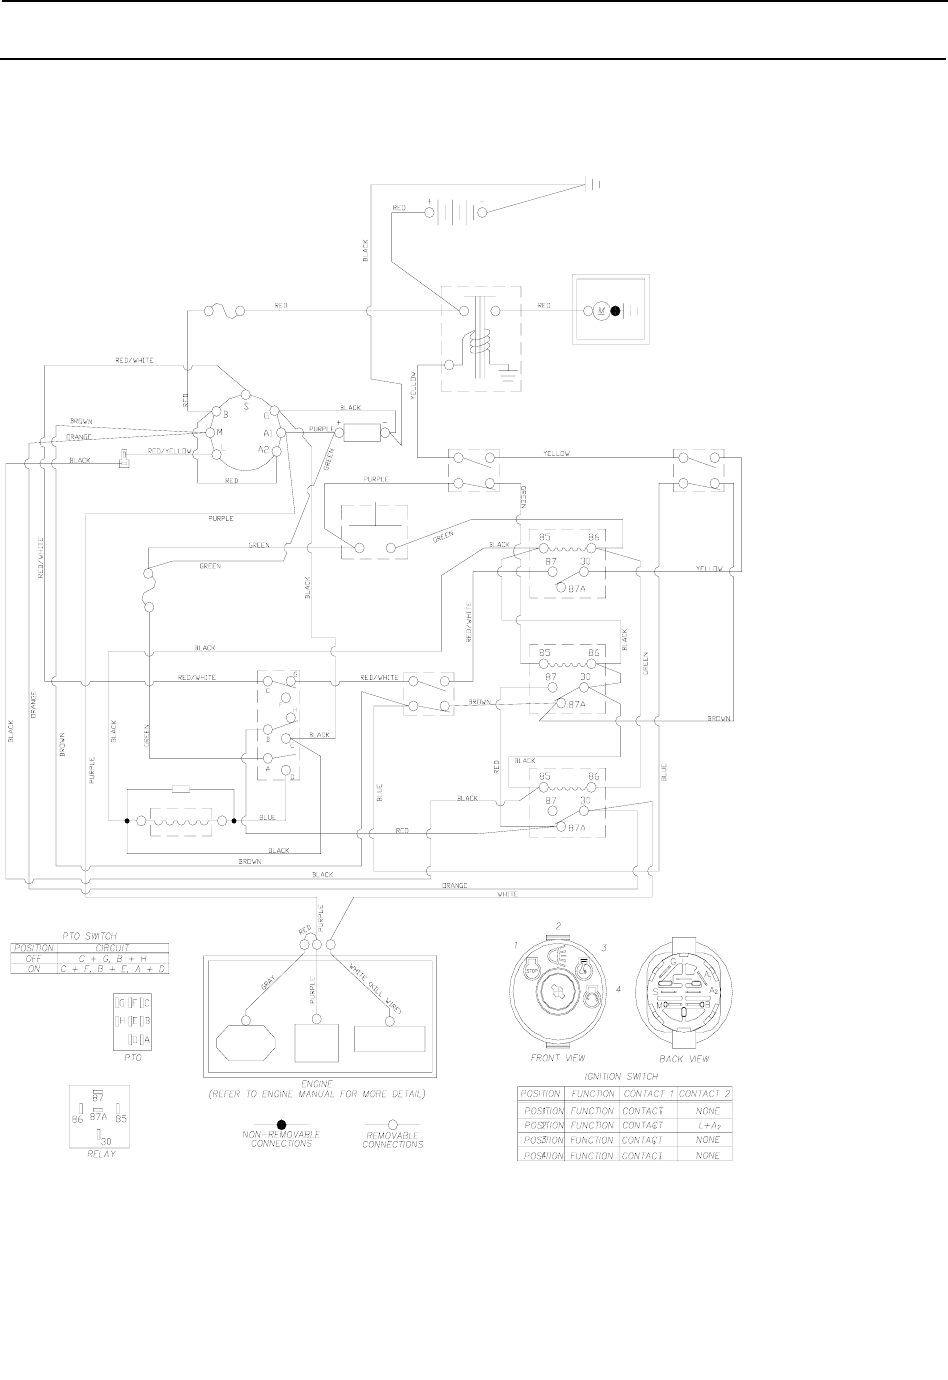 Case 448 Wiring Diagram Fuel Pump Auto For Ignition Switch Additionally 5 Prong